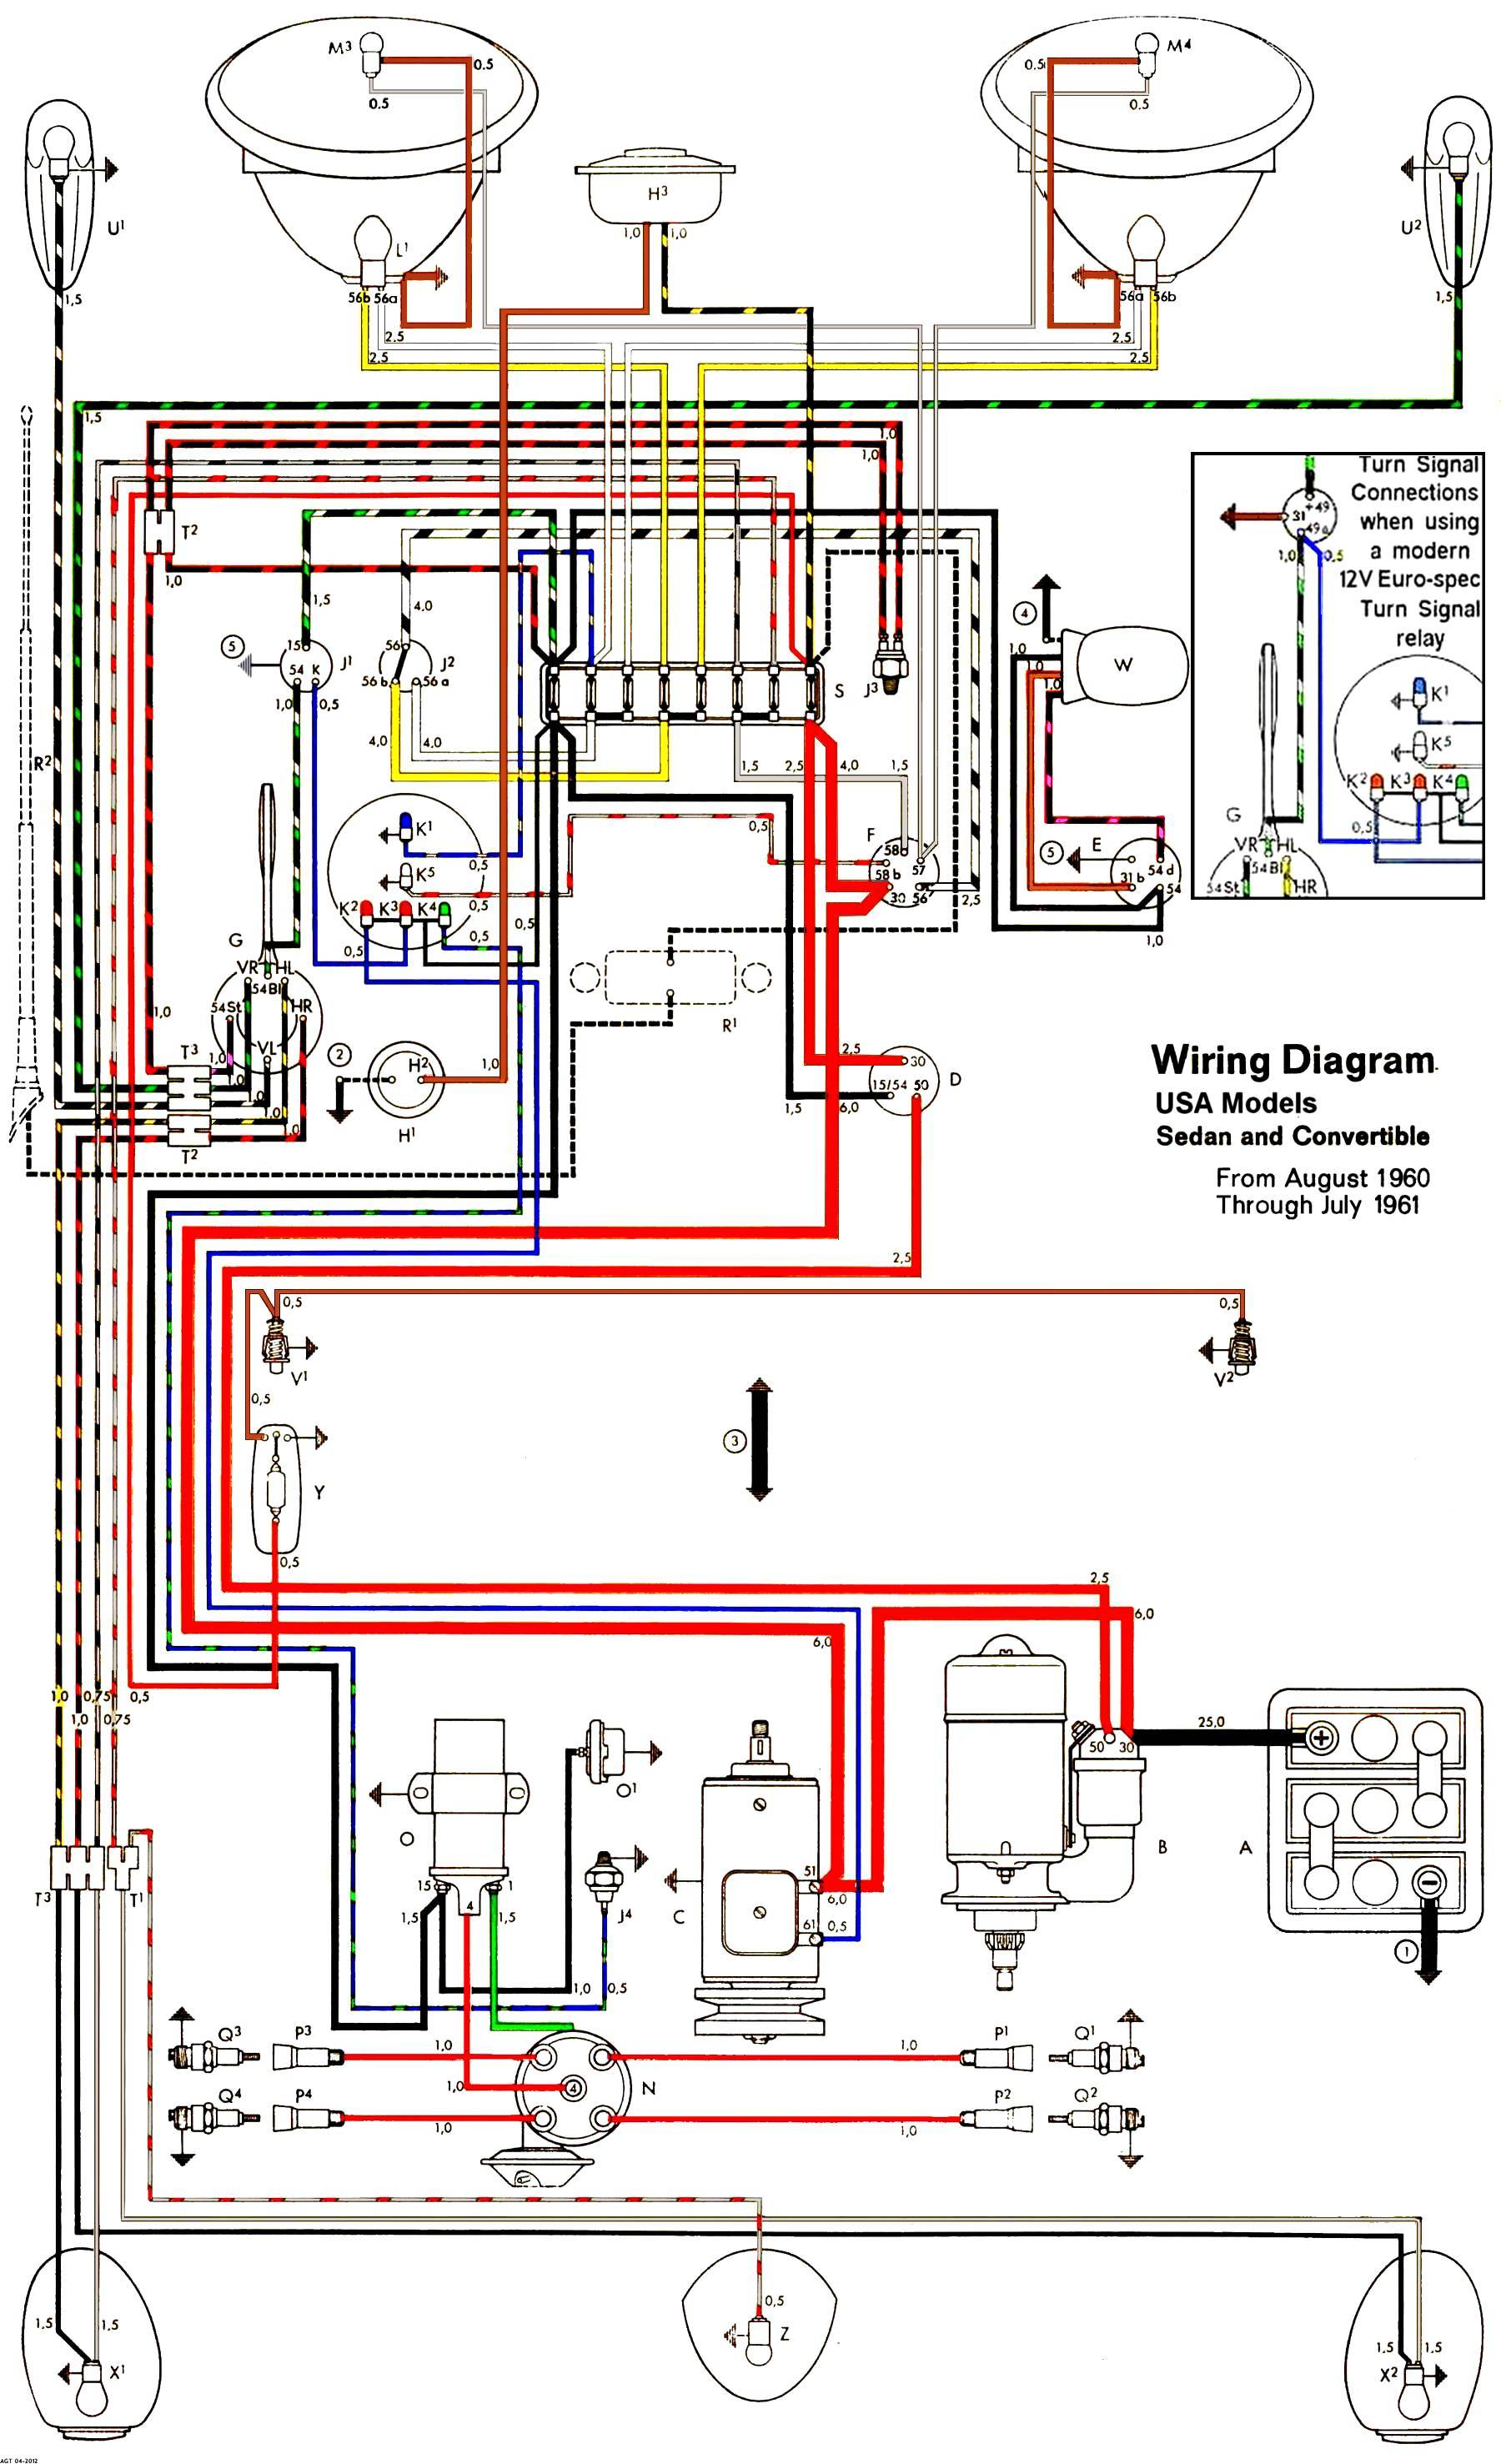 Vw Bug Turn Signal Wiring Reinvent Your Diagram 1968 Beetle Flasher Relay 70 Schematics Diagrams U2022 Rh Parntesis Co 1967